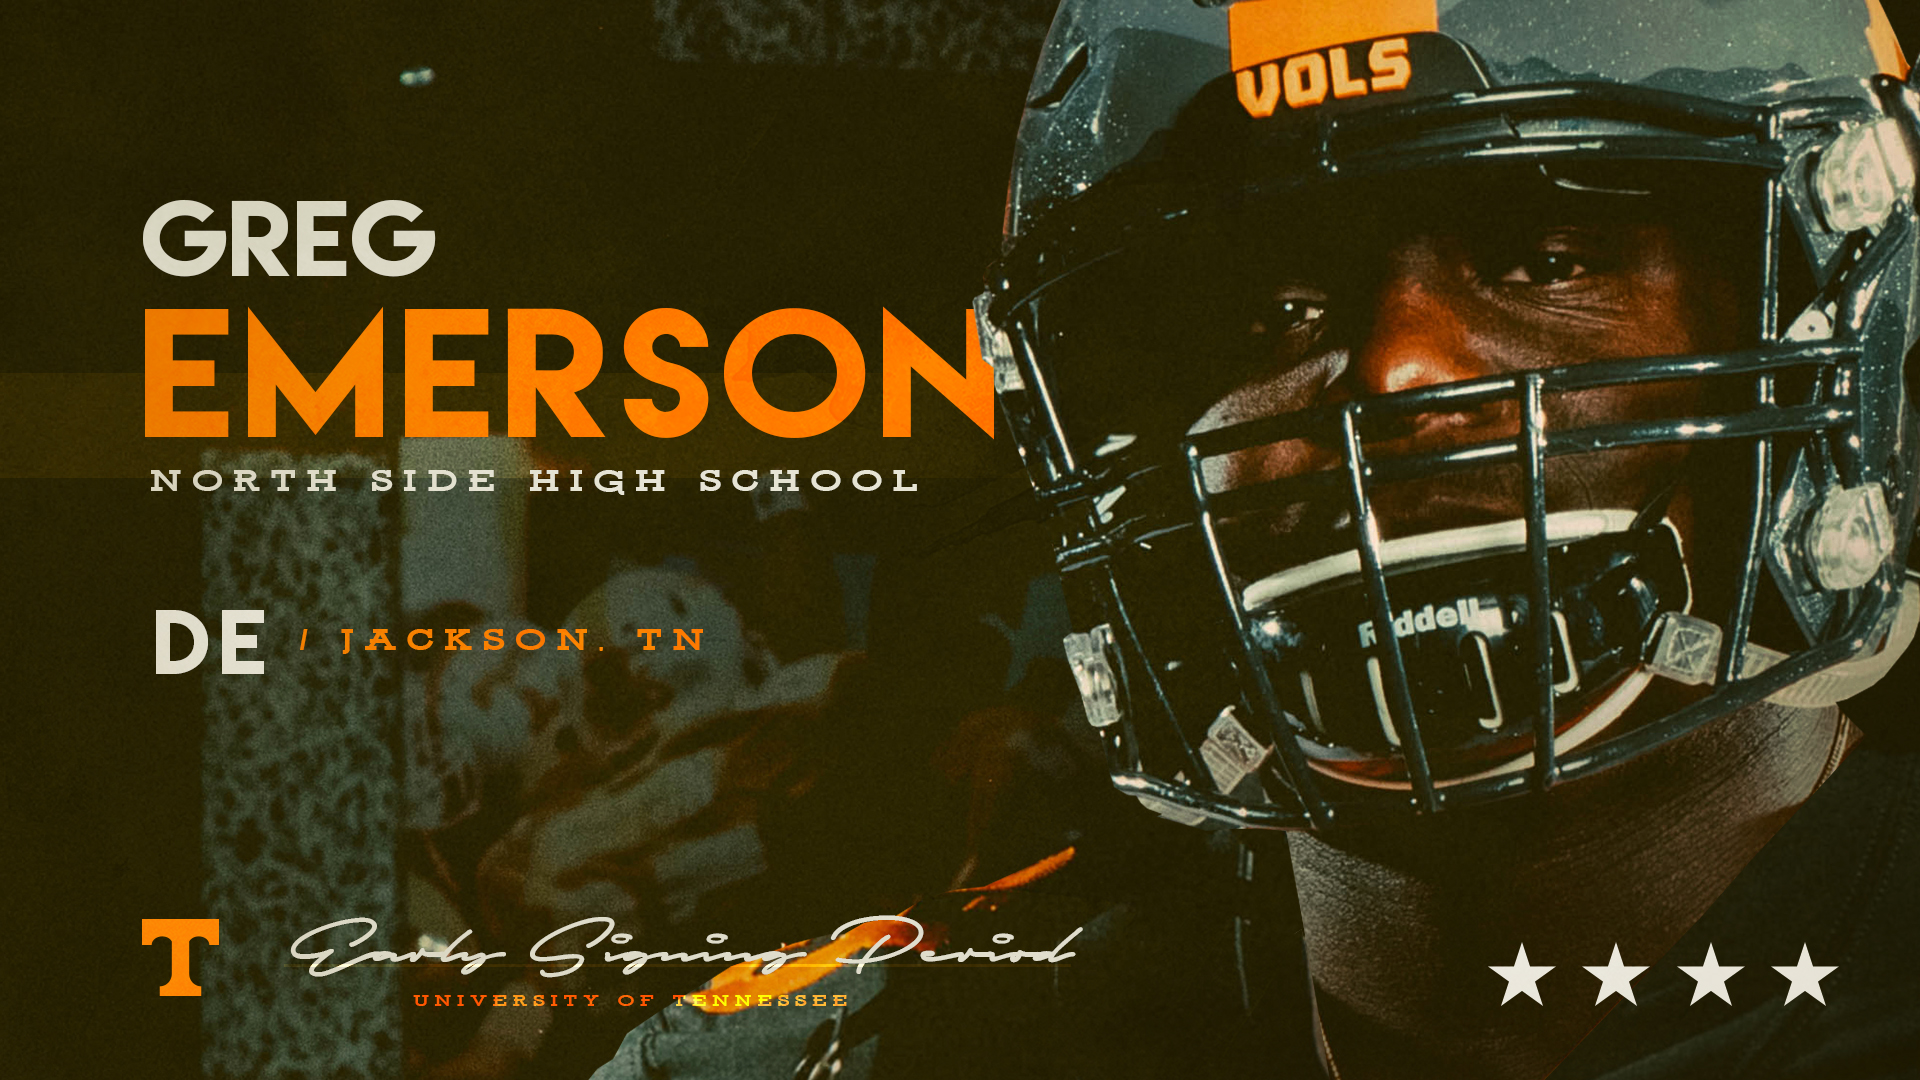 4-star DE Greg Emerson makes it 10 signees for the Vols